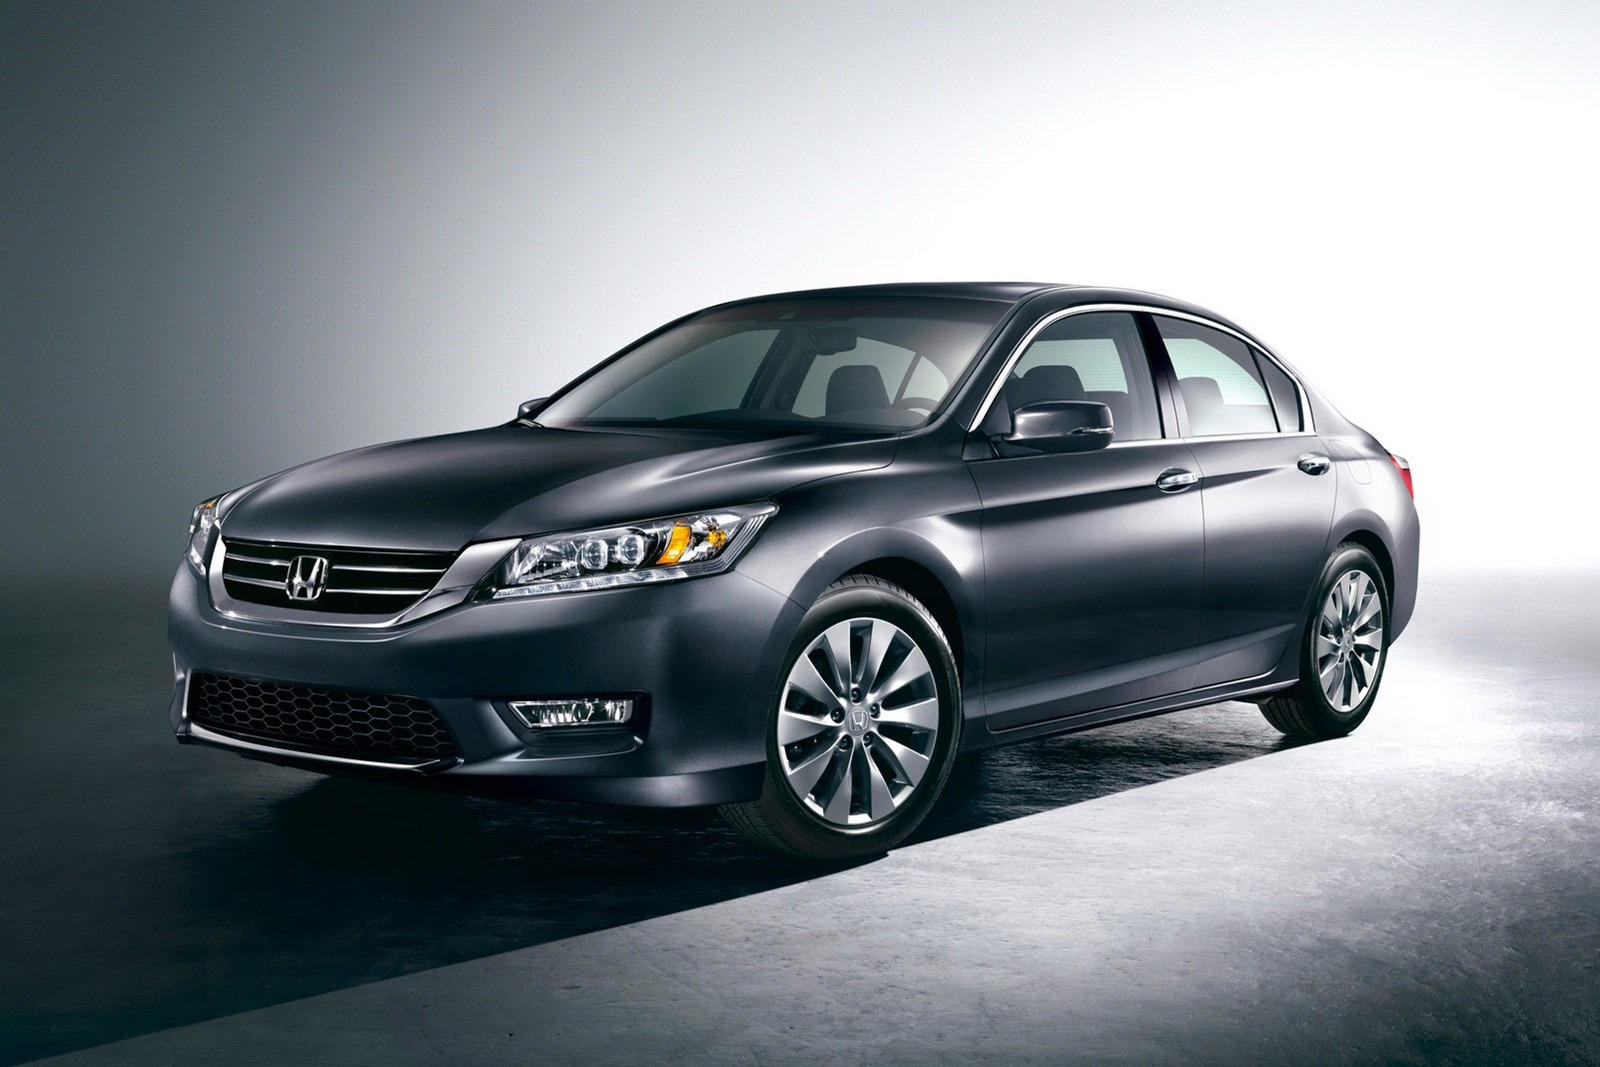 2013 Honda Accord Sedan 2013 Honda Accord Sedan and Coupe compact four wheelers